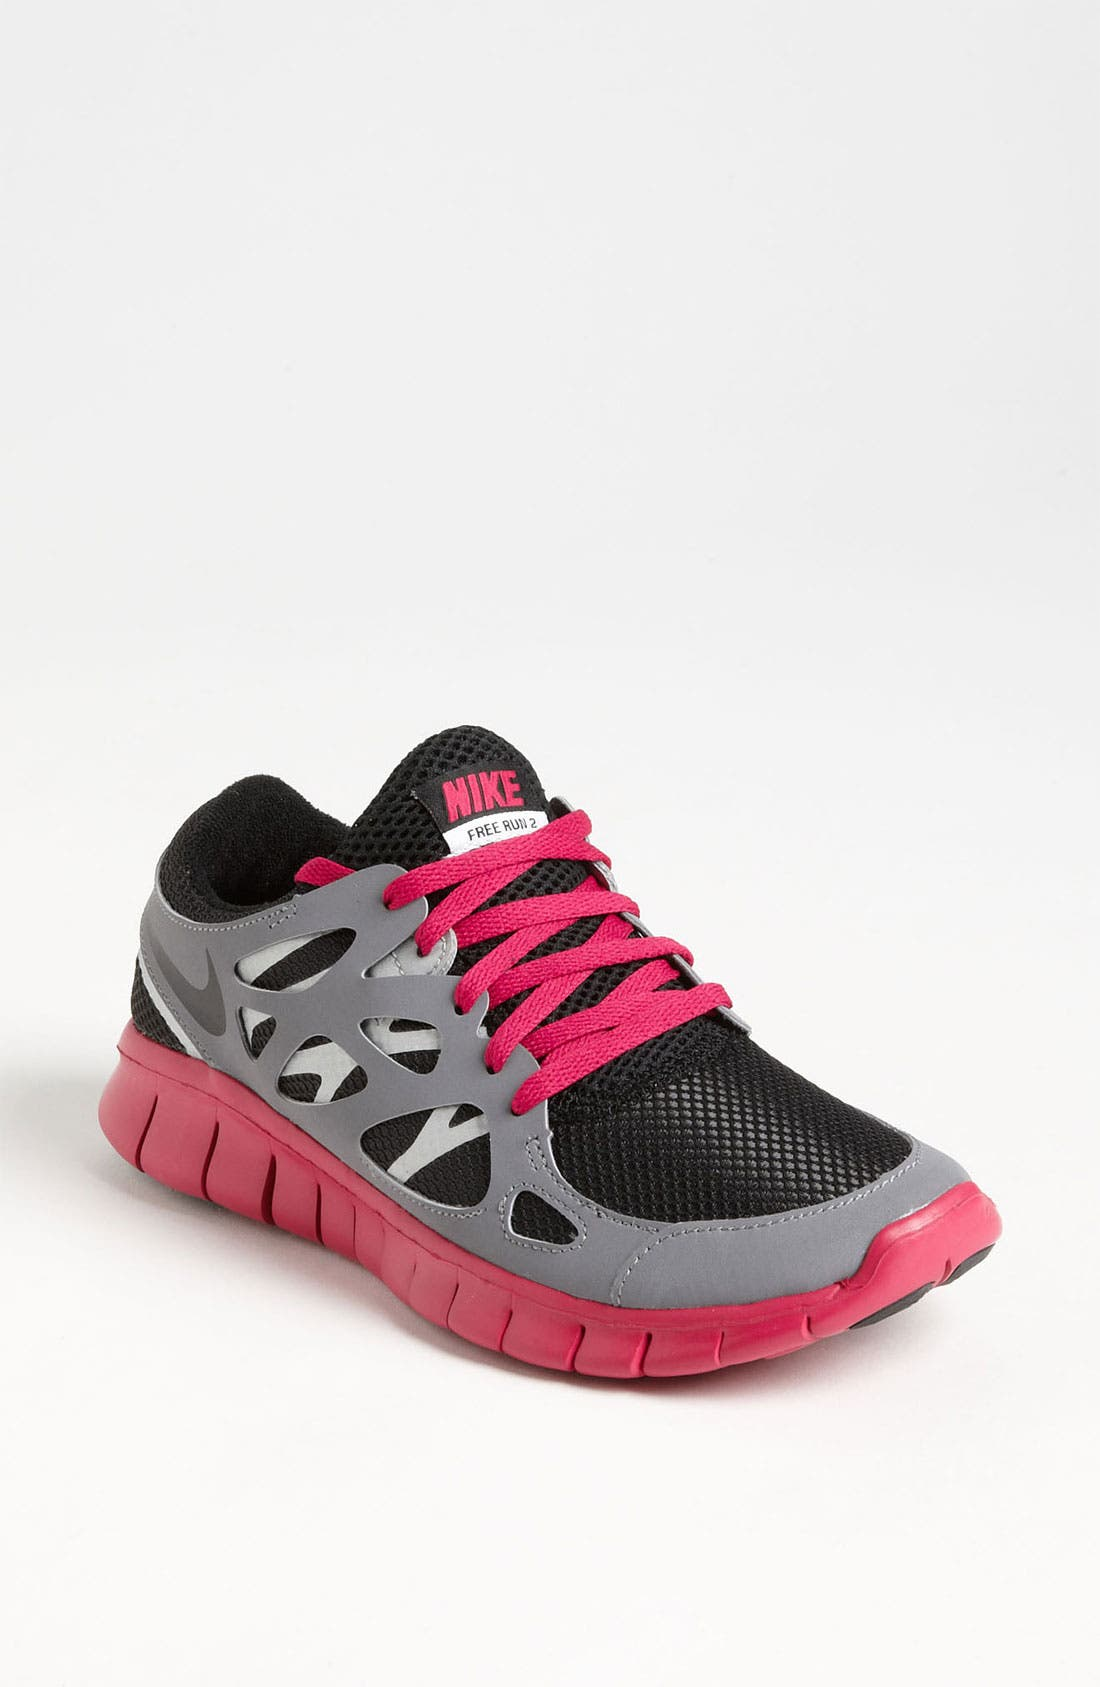 Main Image - Nike 'Free Run 2 EXT' Running Shoe (Women)